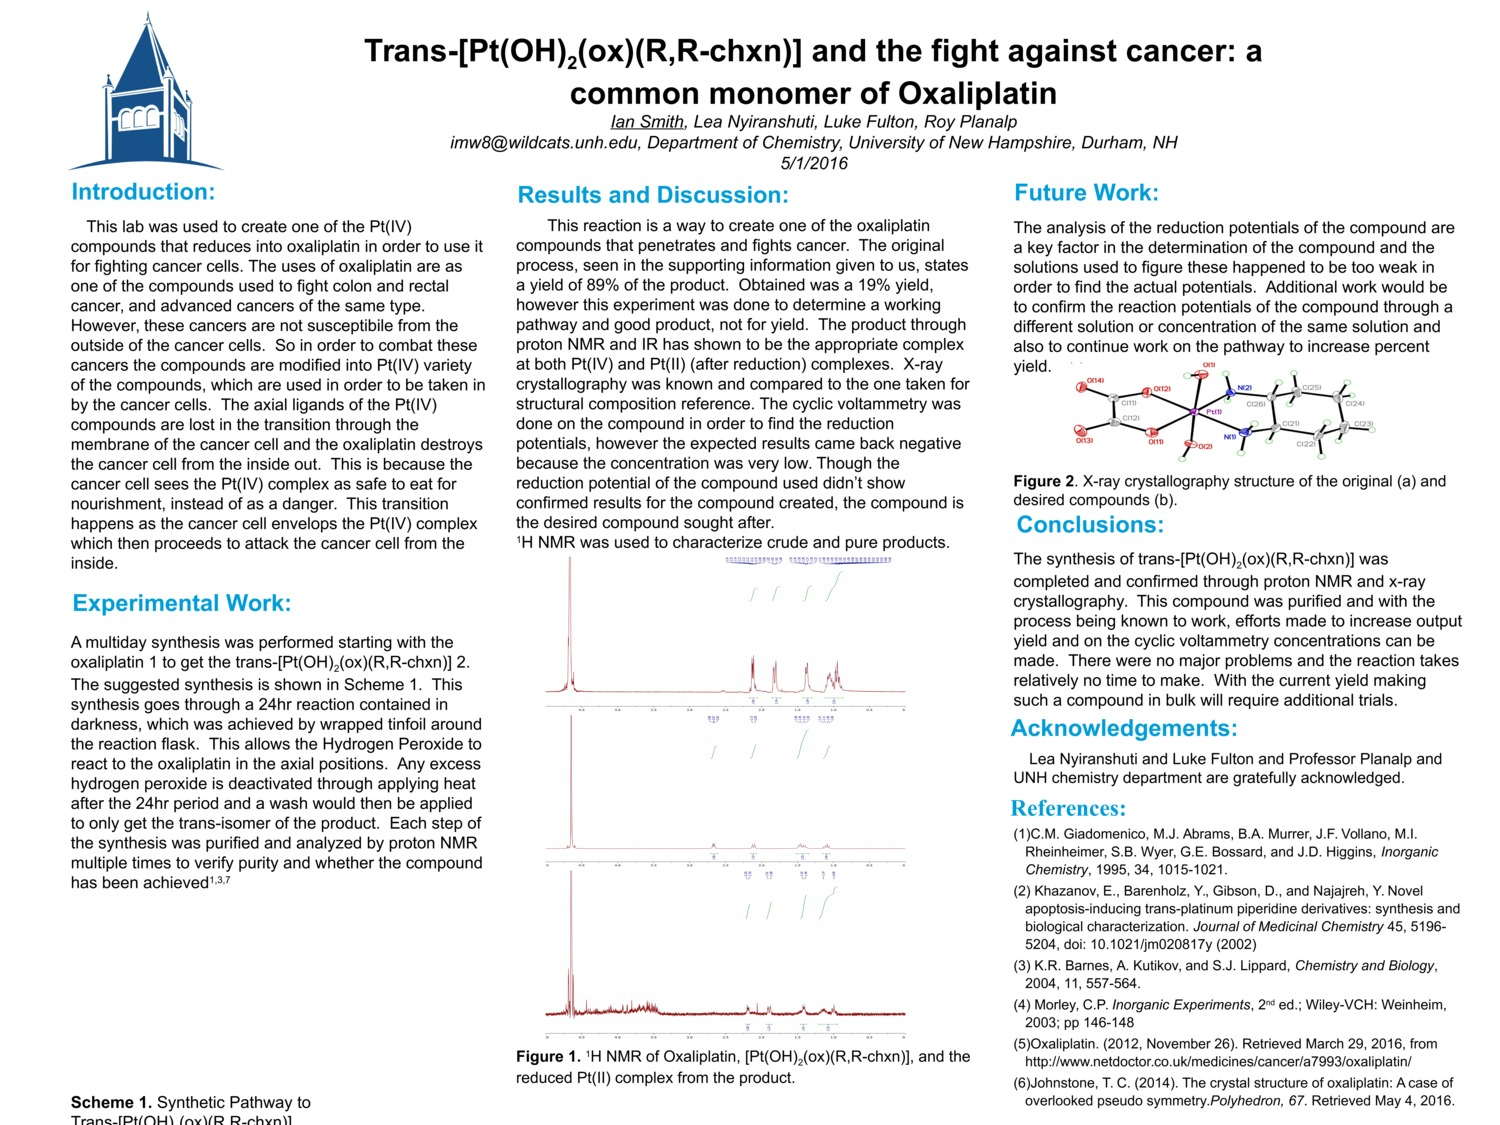 Trans-[Pt(Oh)2(Ox)(R,R-Chxn)] And The Fight Against Cancer: A Common Derivative Of Oxaliplatin by imw8